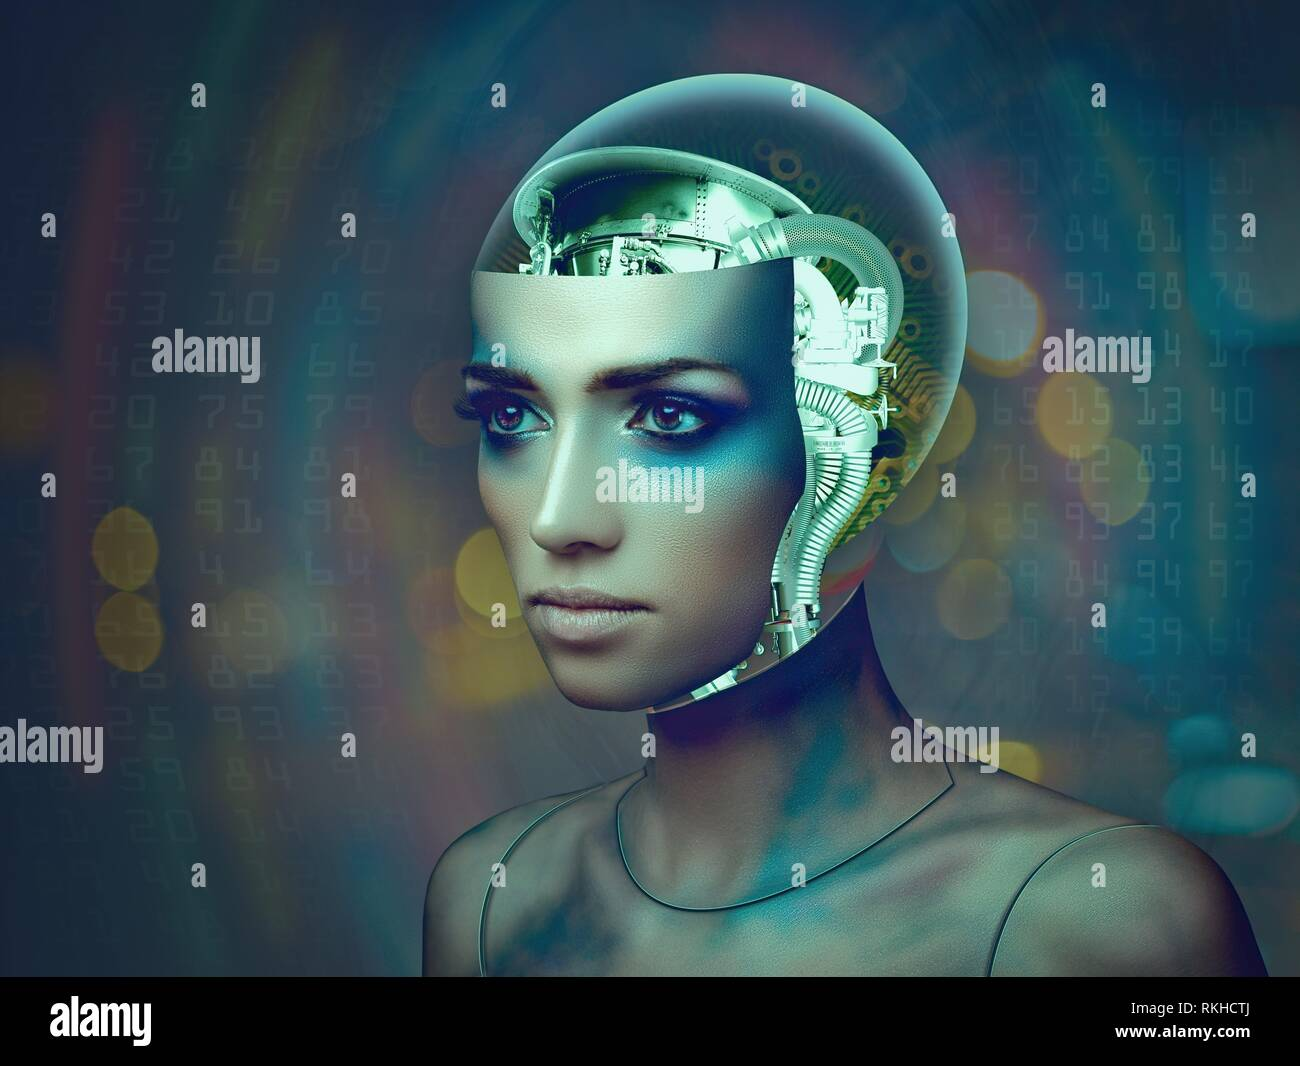 Cybernetic organism, female portrait with science and technology abstract backgrounds. - Stock Image